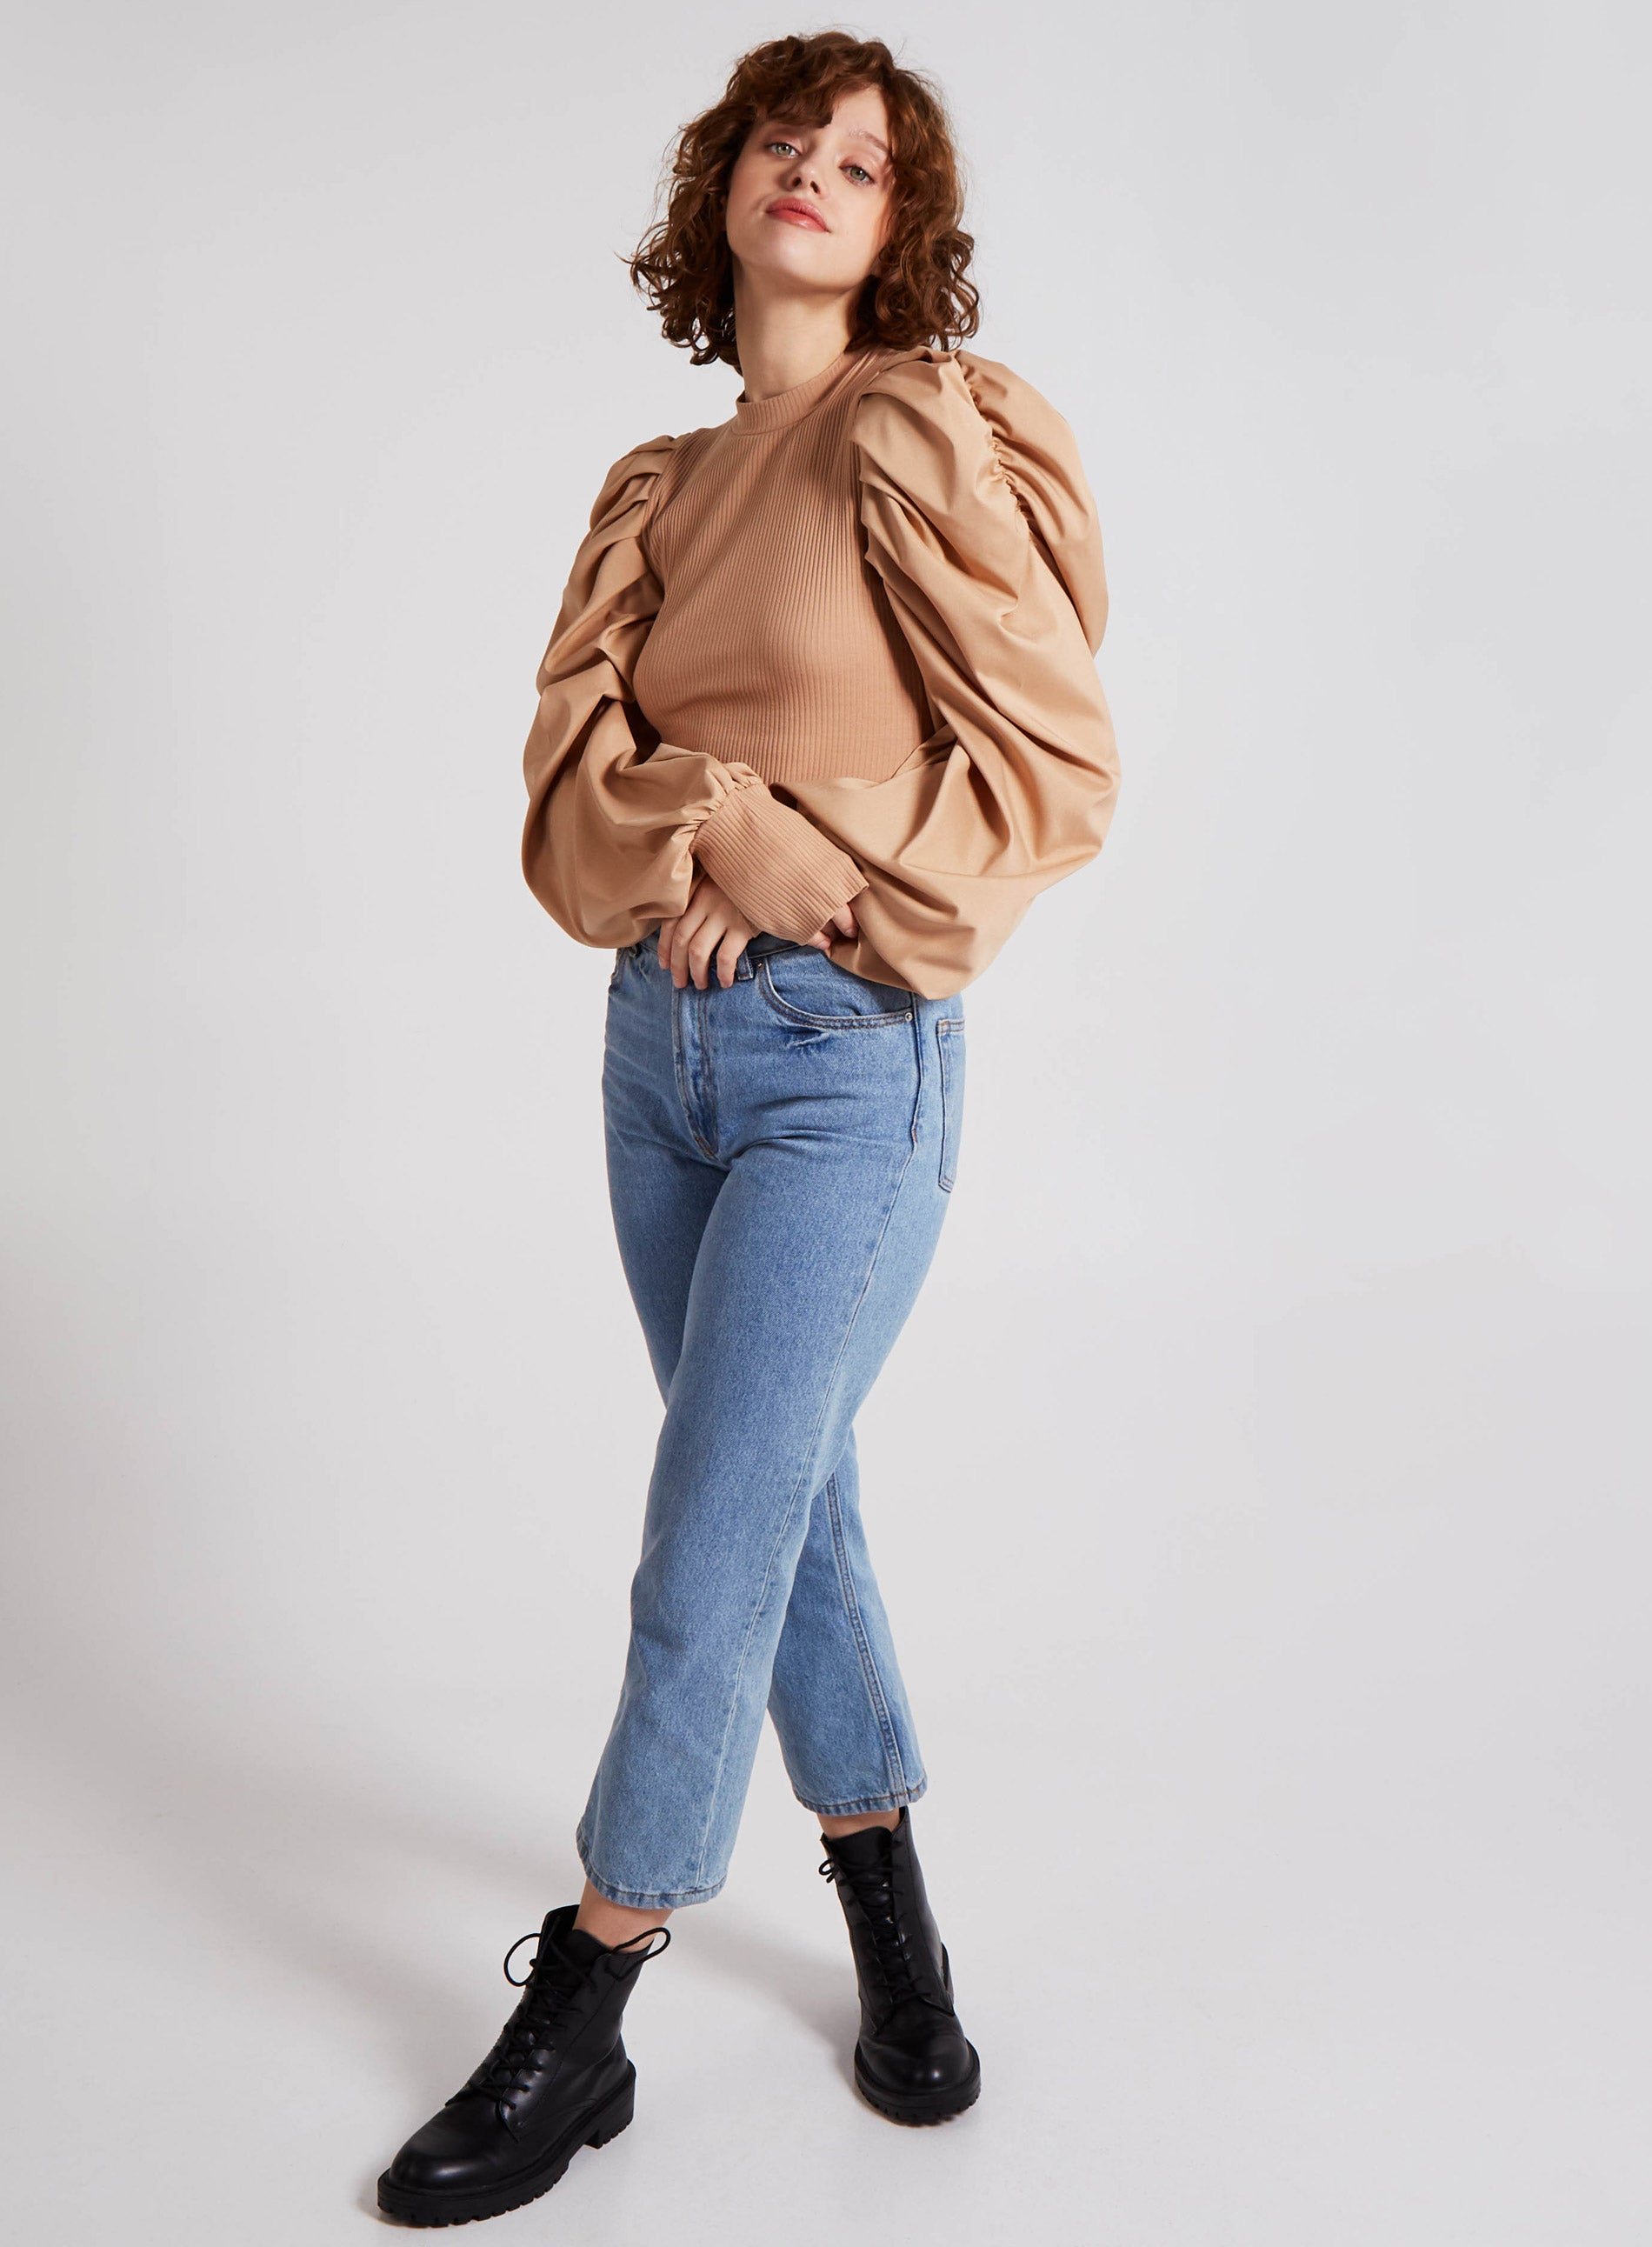 DAINTY - Puff Shirt Sleeve Ribbed High Neck Top